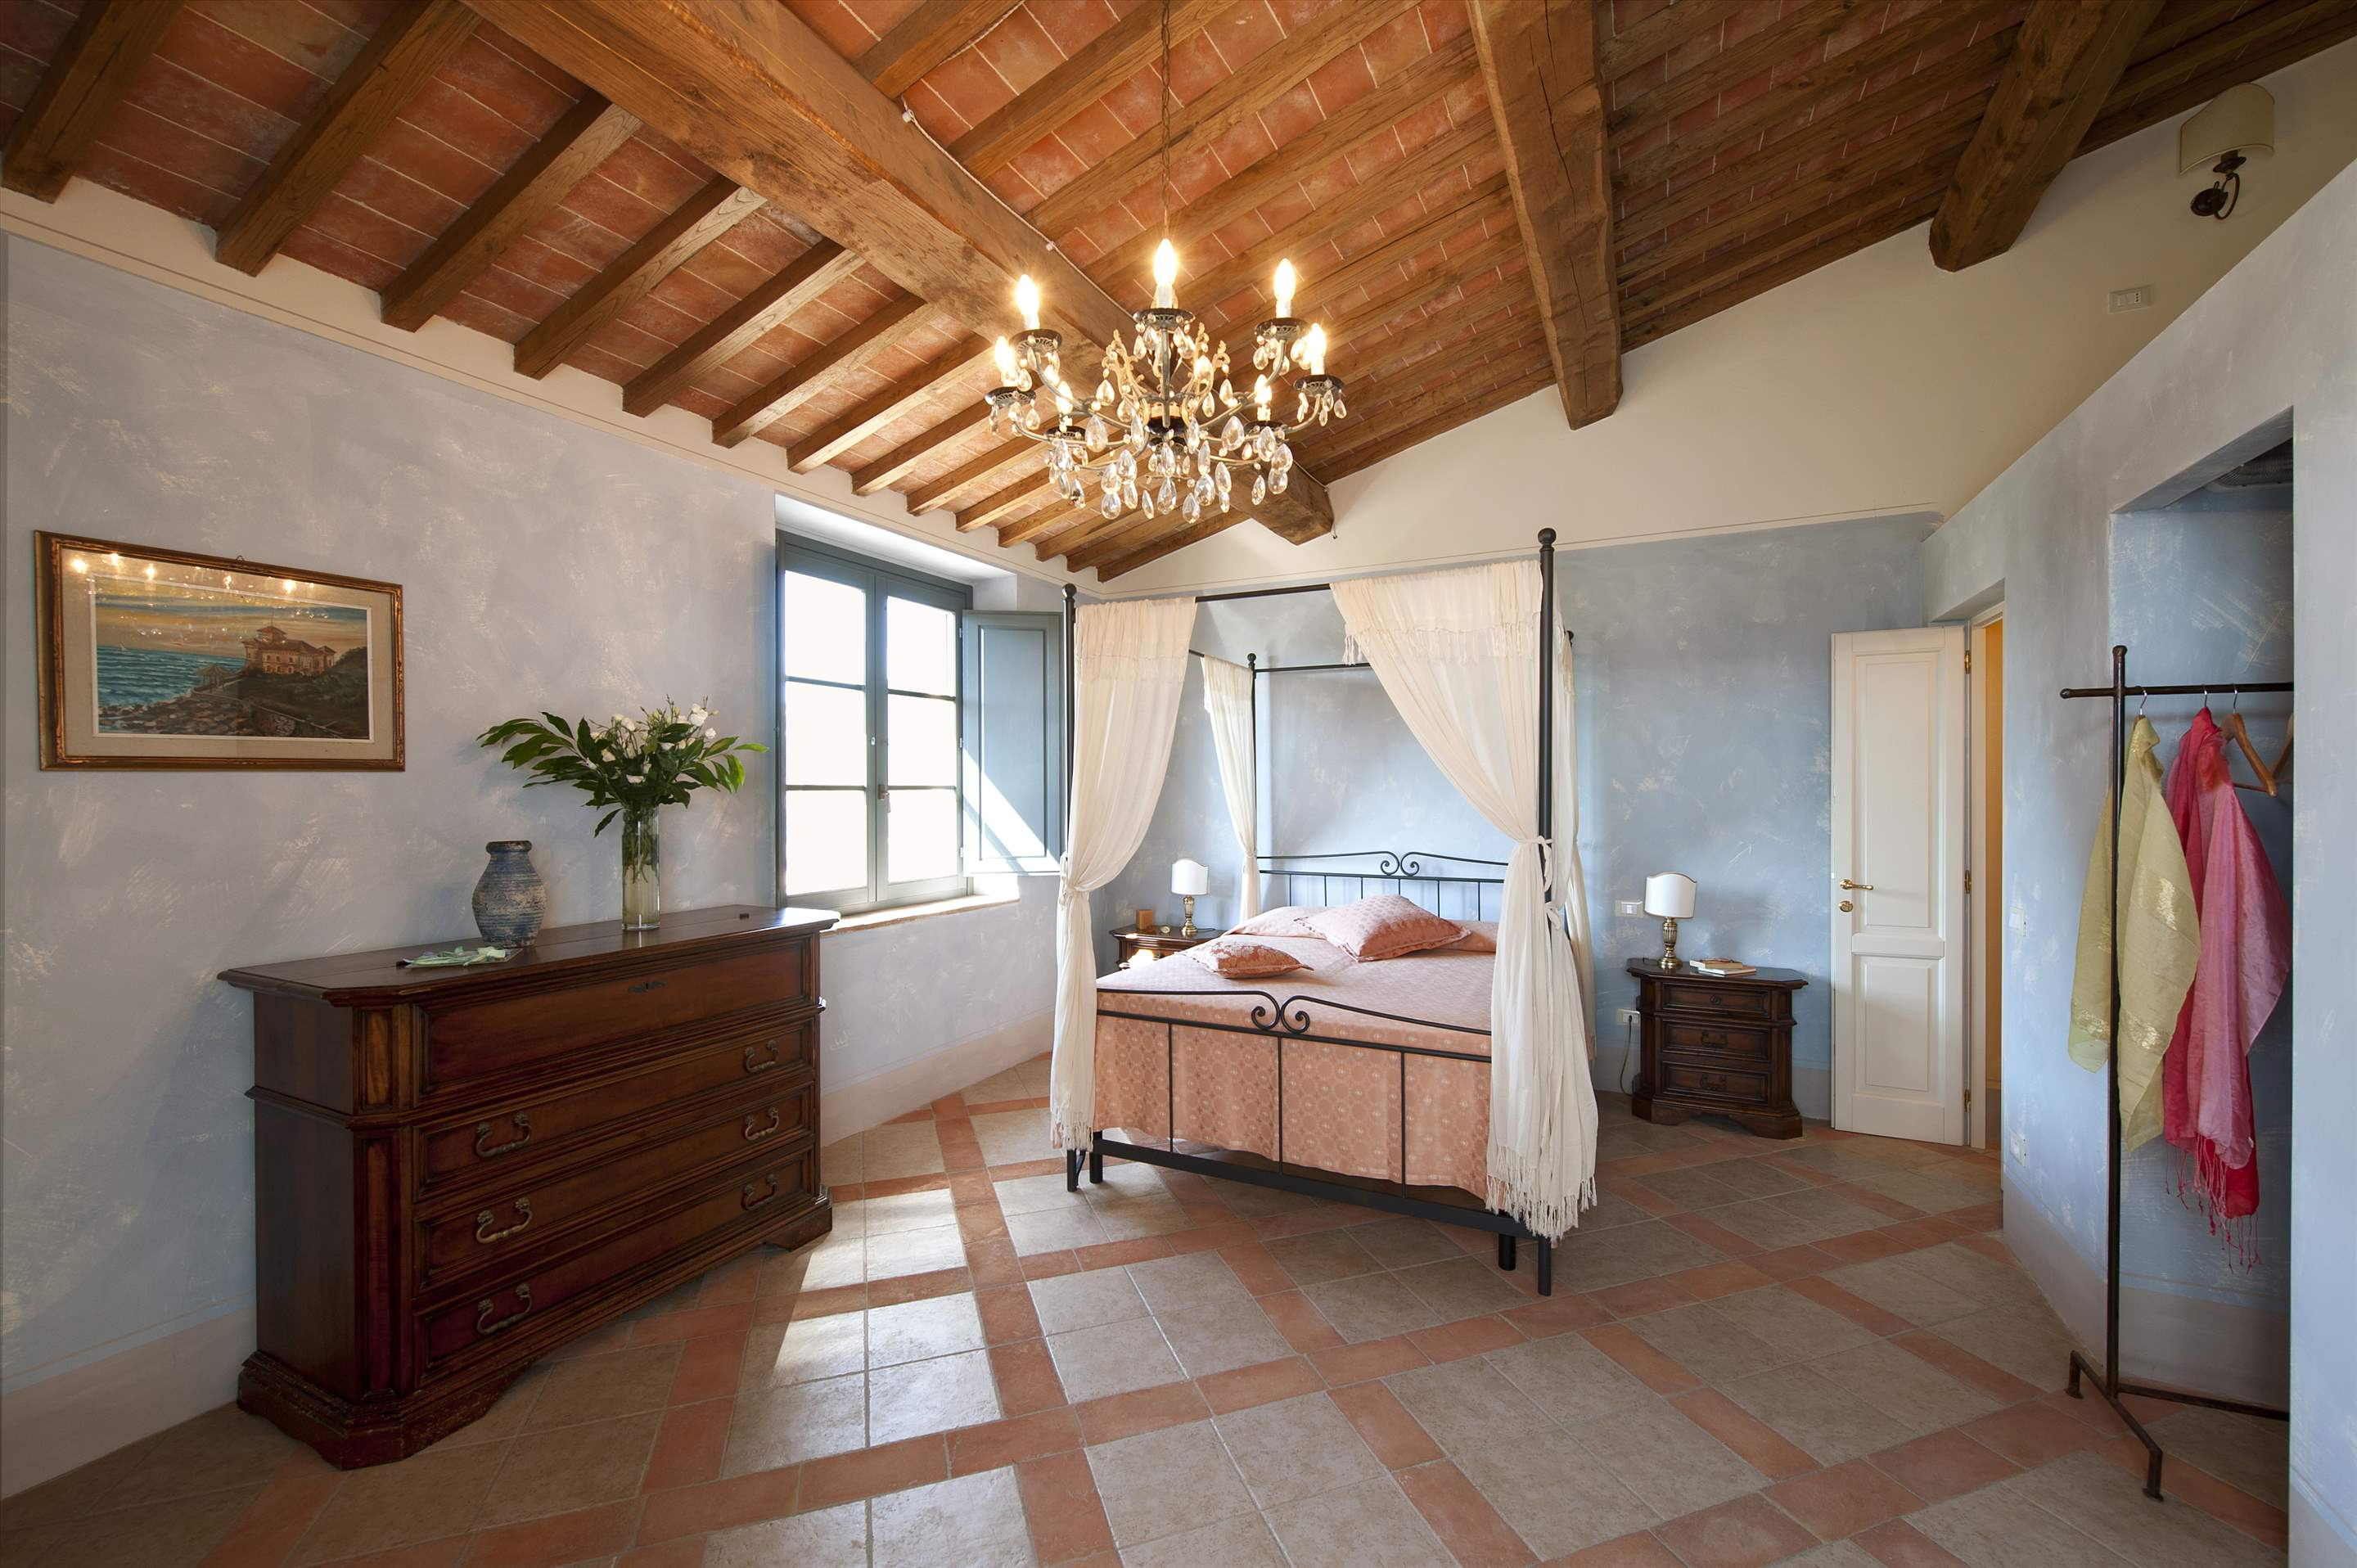 Podere Di Collina, Villa & Apts, 8 bedroom villa in Tuscany Coast, Tuscany Photo #23